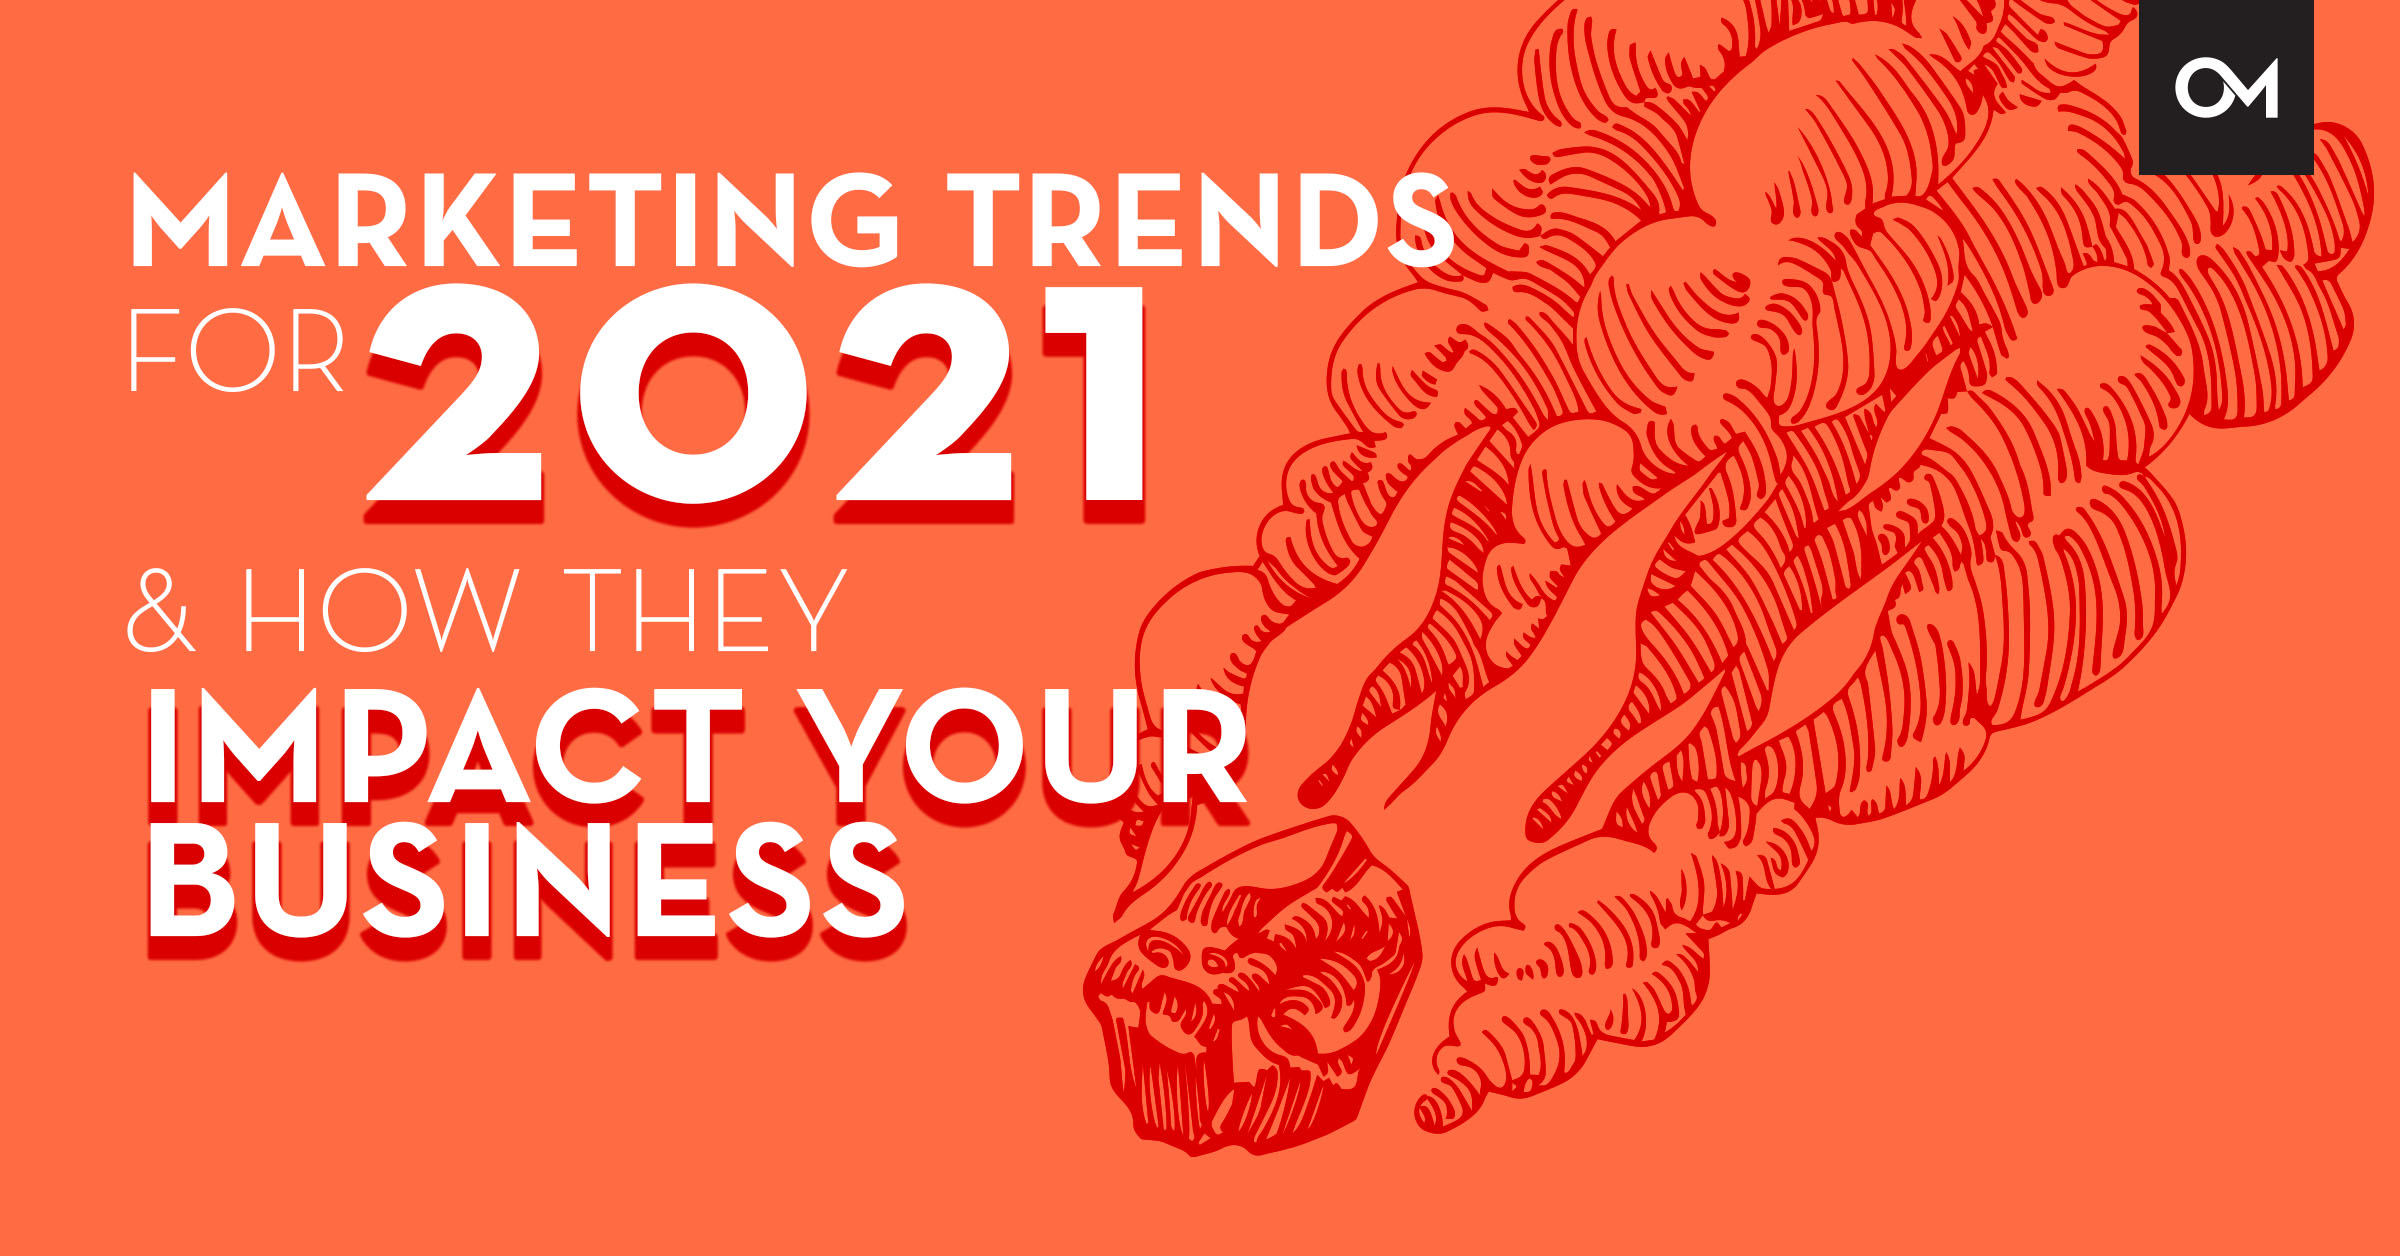 Marketing trends for 2021 and how they impact your business.